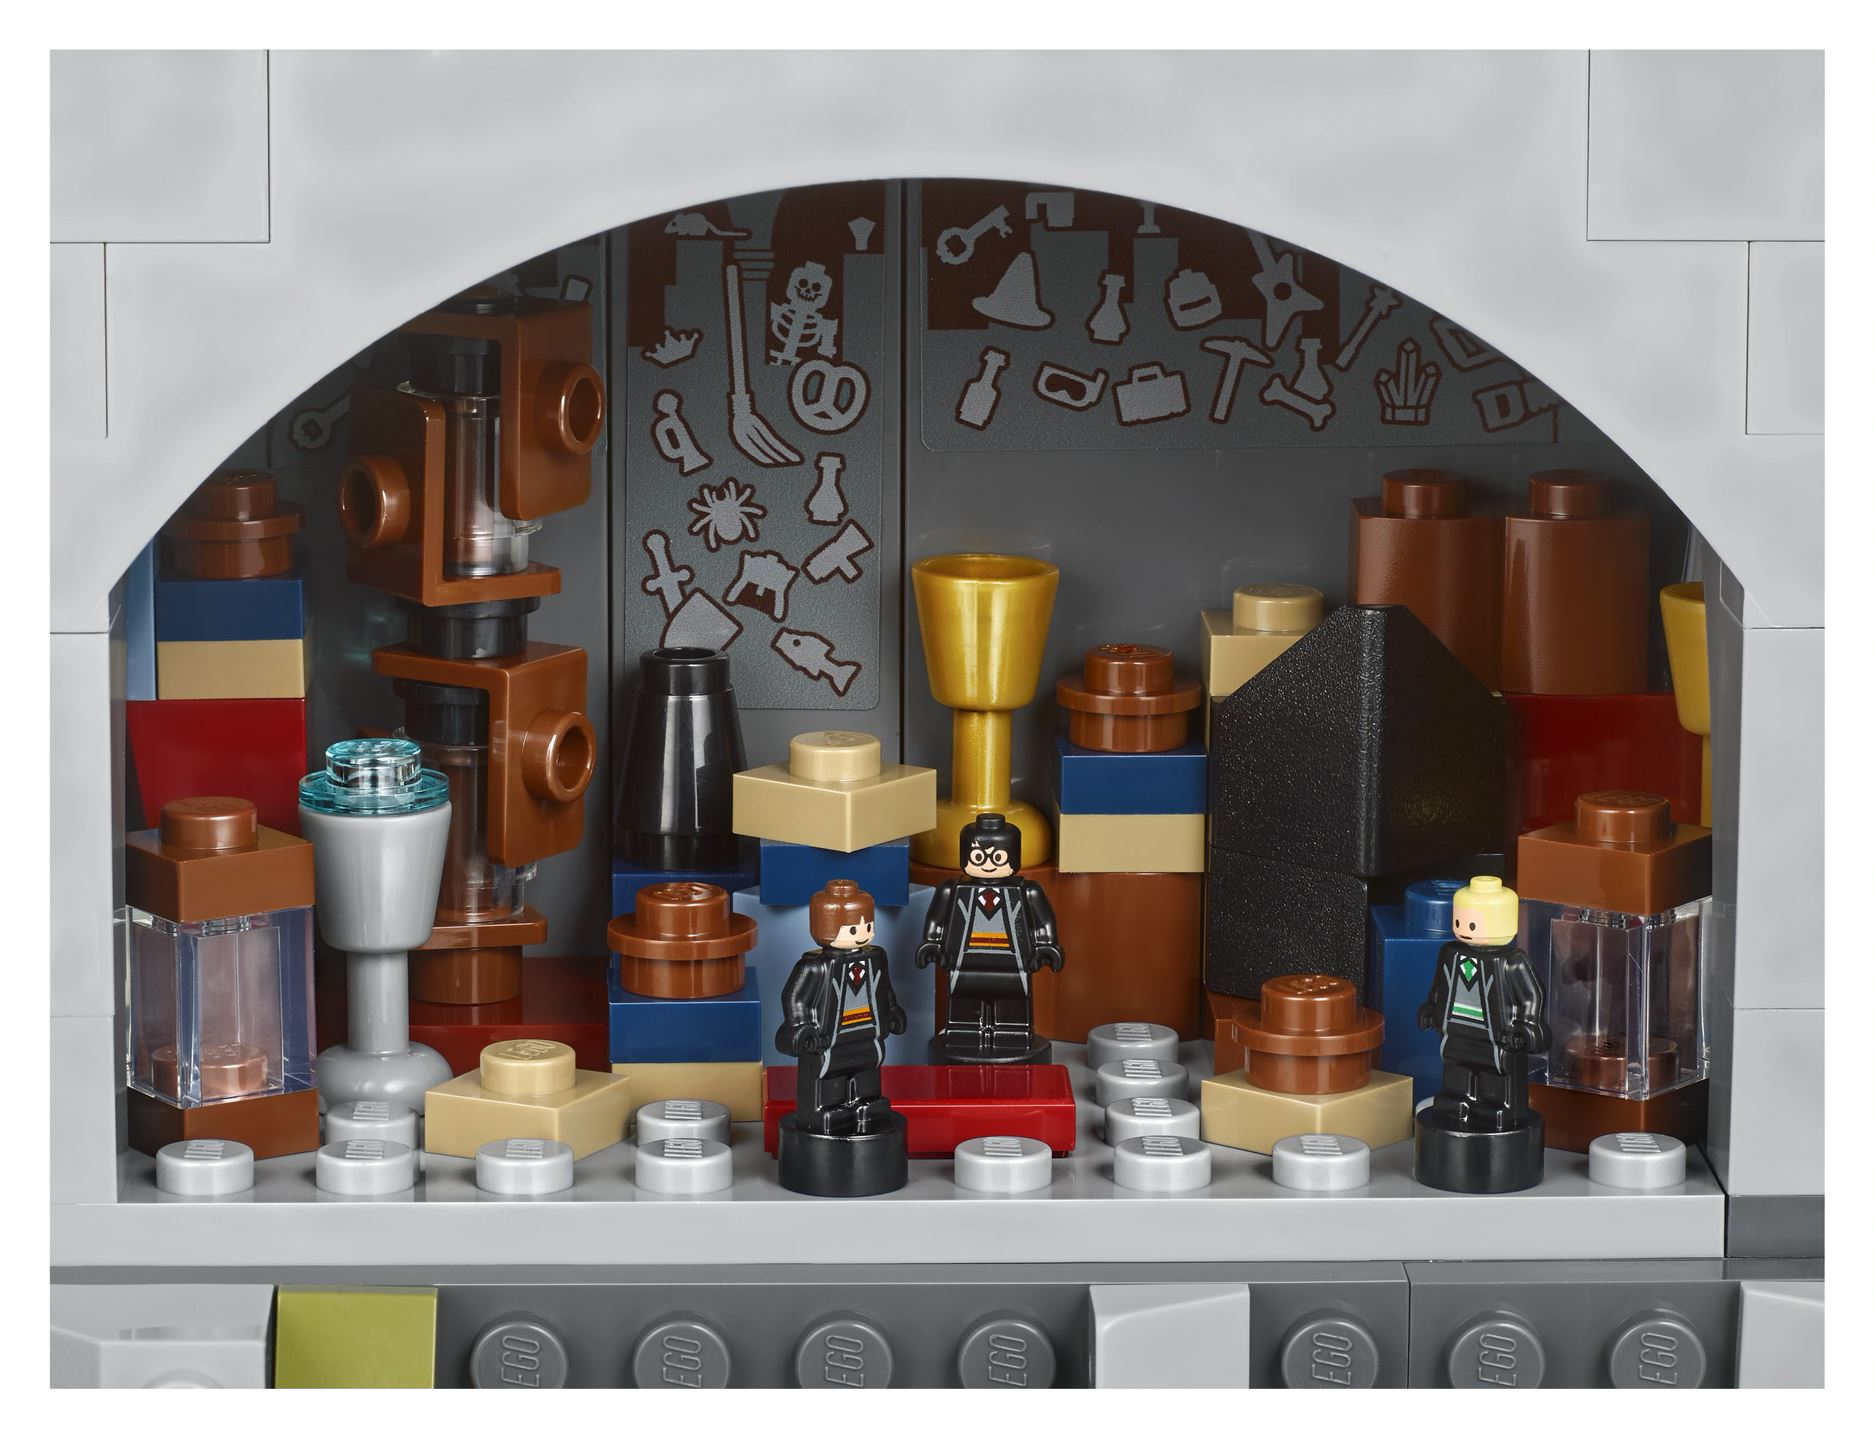 Legos Insane New Hogwarts Set Costs 400 Yes Four Hundred Dollars